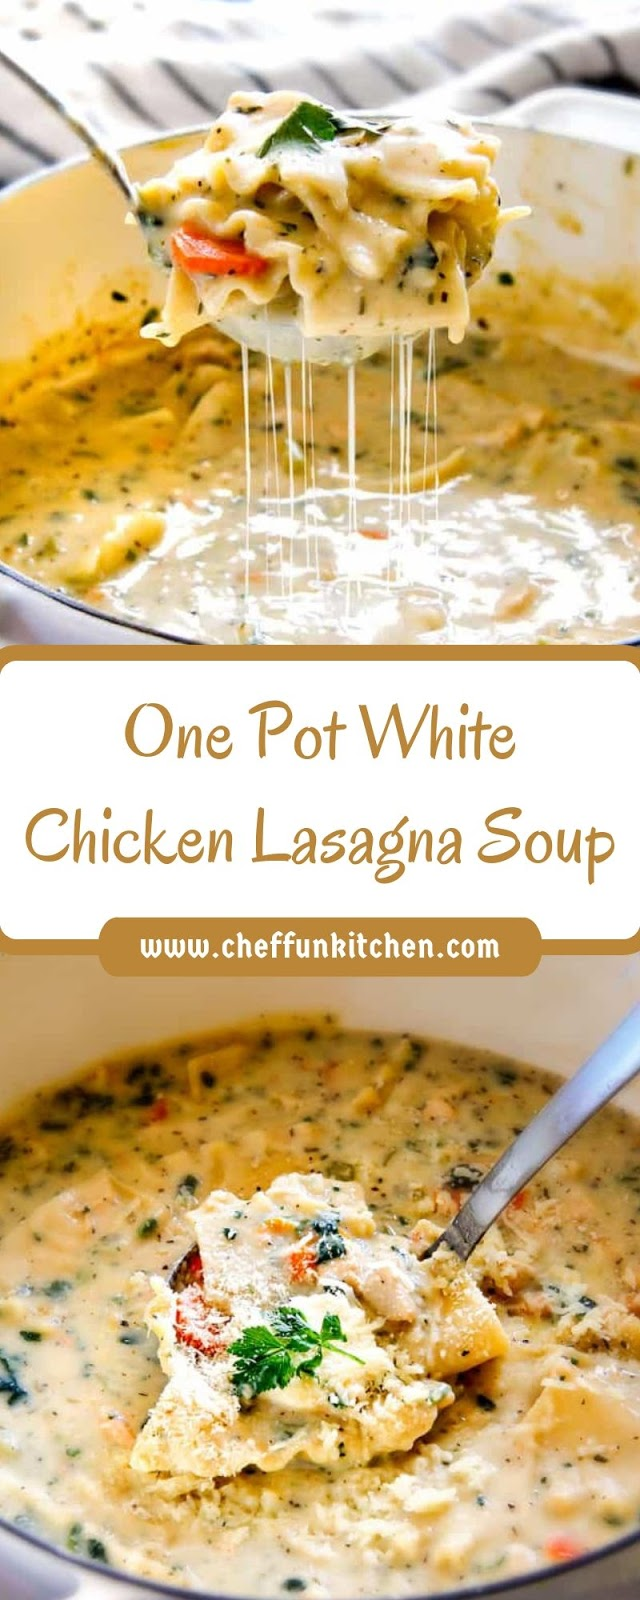 One Pot White Chicken Lasagna Soup